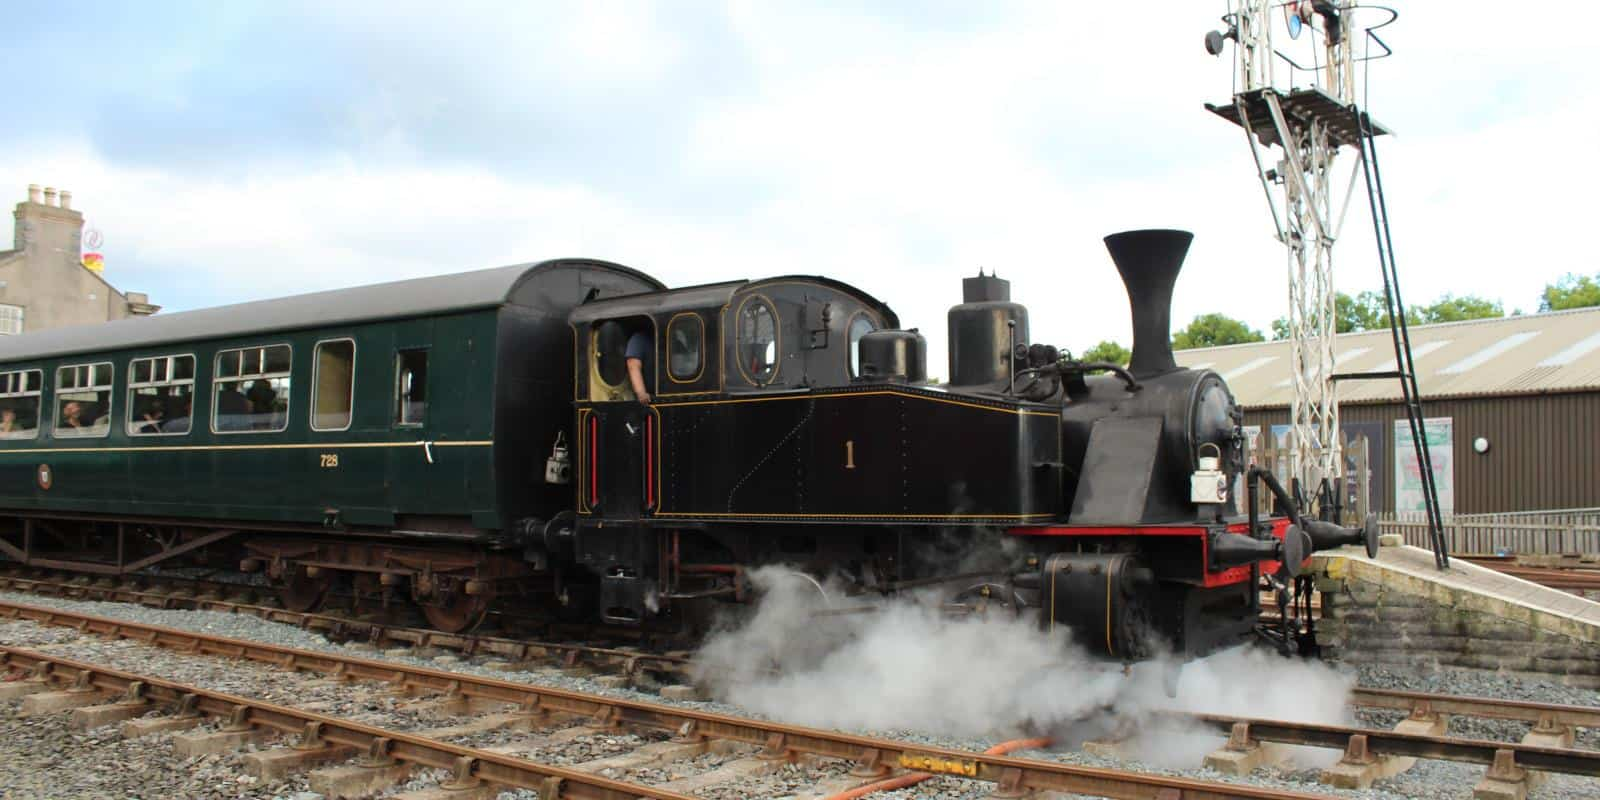 Our steam train sets off on a charter trip from Downpatrick Station